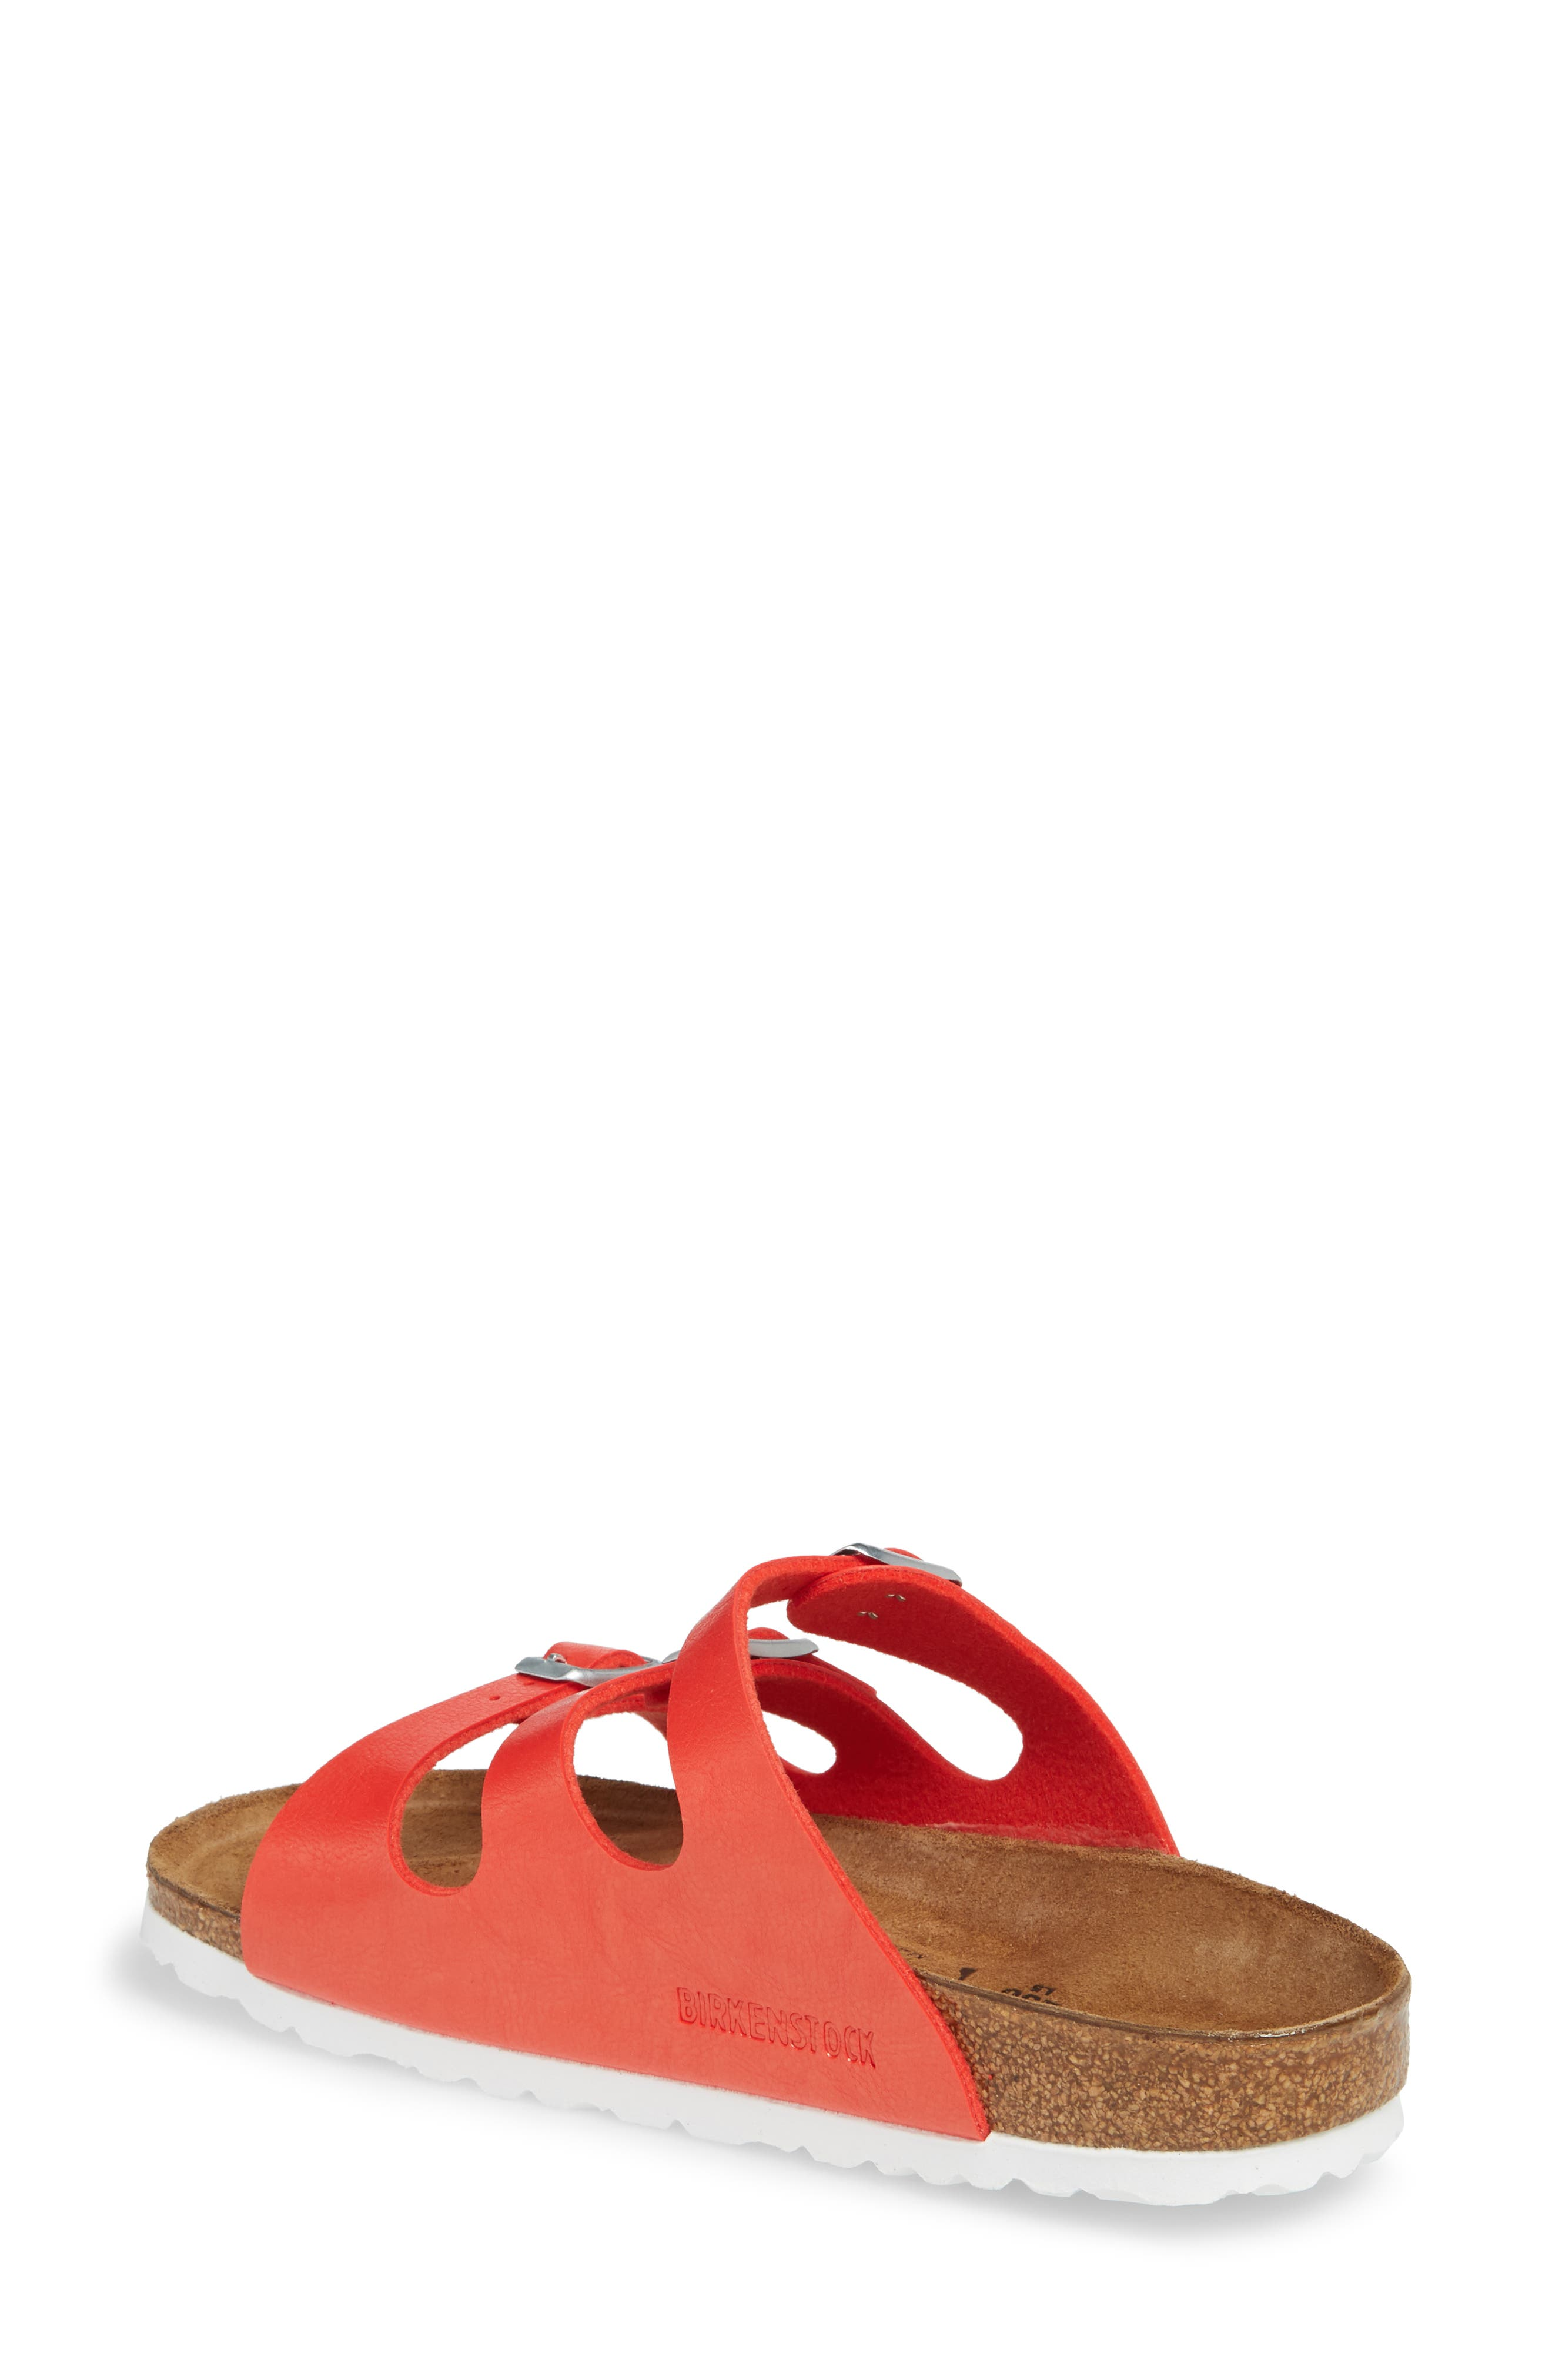 'Florida' Soft Footbed Sandal,                             Alternate thumbnail 2, color,                             Graceful Hibiscus Leather